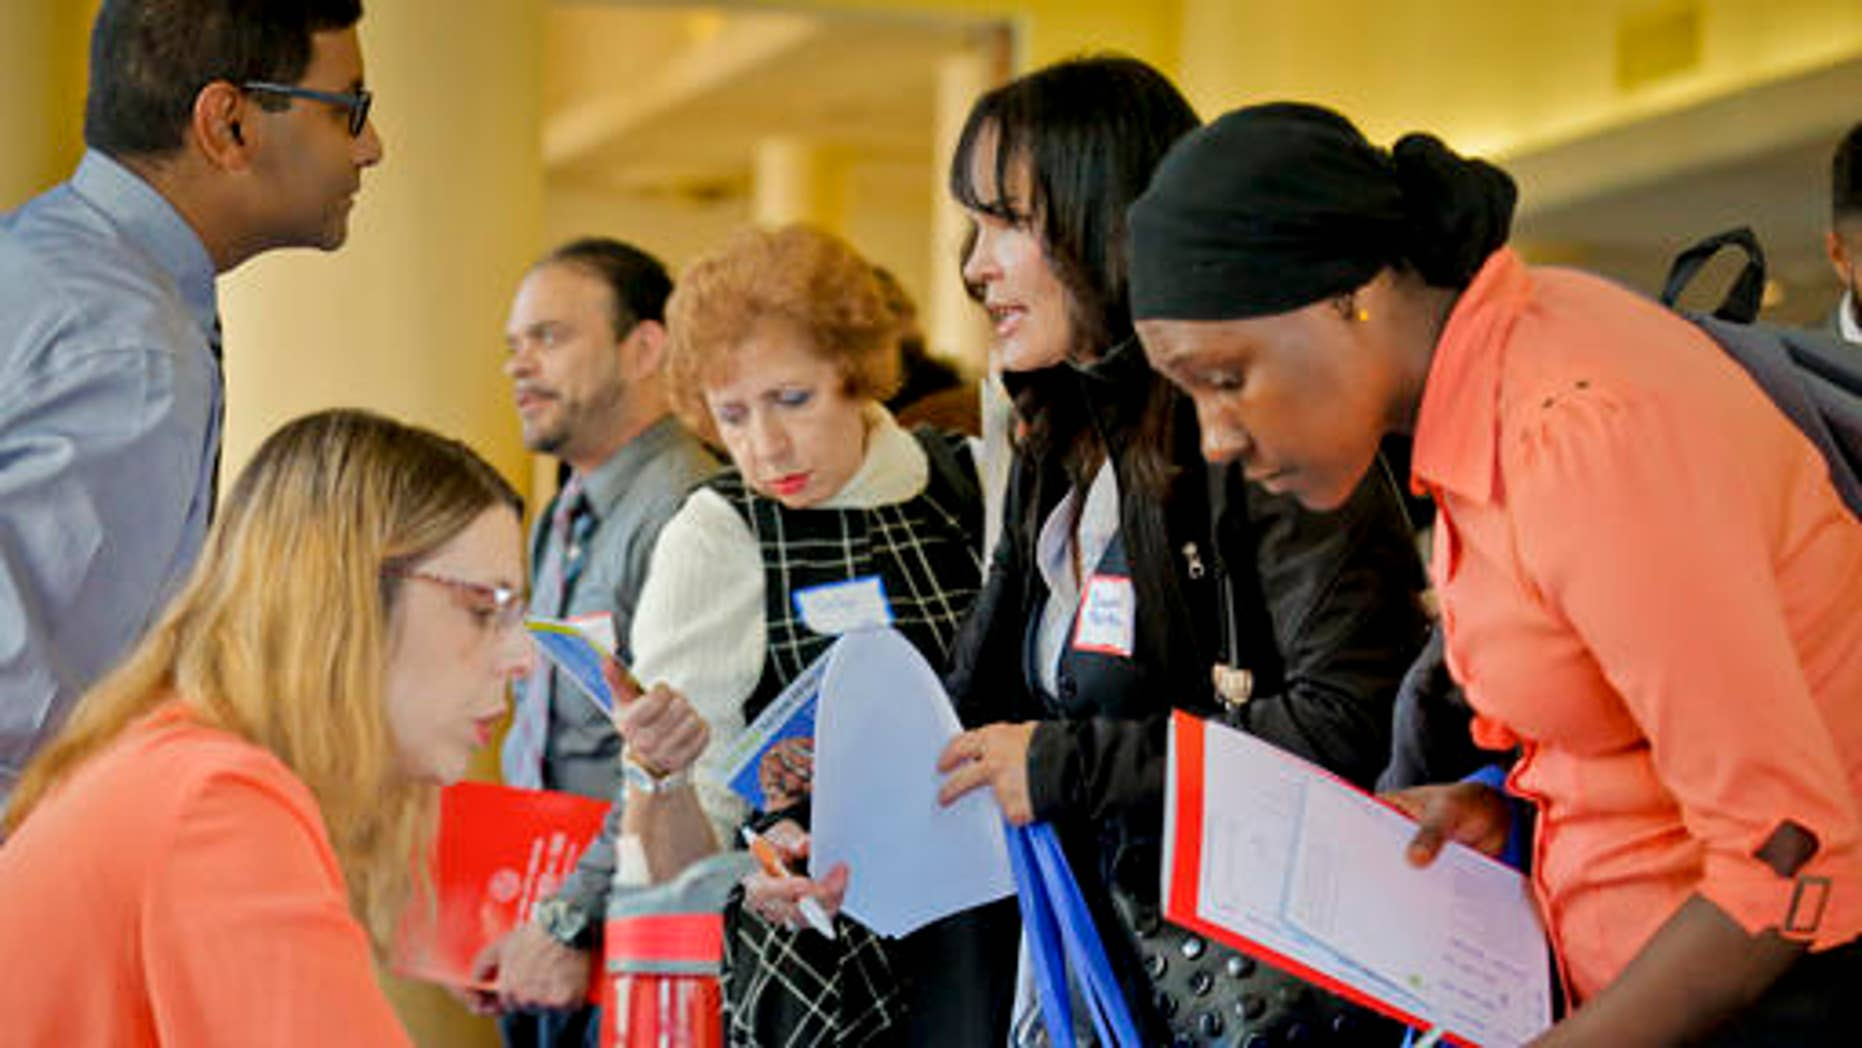 Job seekers attend the New York Department of Citywide Administrative Services (DCAS) 2016 job fair, Wednesday Nov. 2, 2016, in New York.   U.S. employers added a decent 161,000 jobs in October 2016 and raised pay sharply for many workers. It was the final major report on a lukewarm but durable economy before Americans choose a new president next week. (AP Photo/Bebeto Matthews)